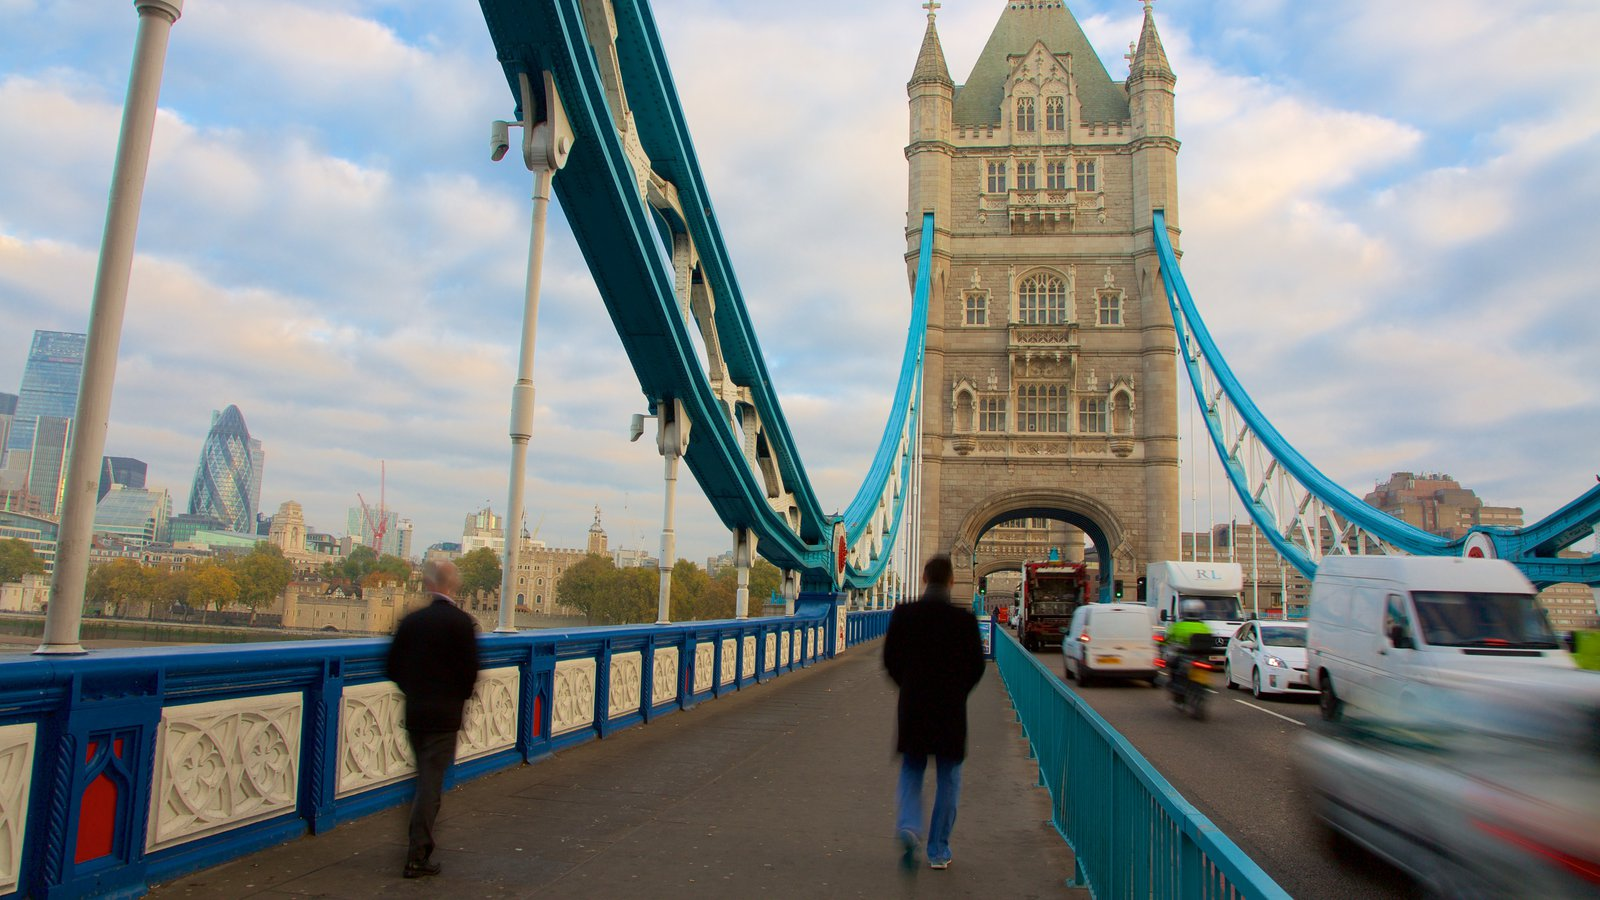 Tower Bridge showing a bridge, street scenes and heritage architecture